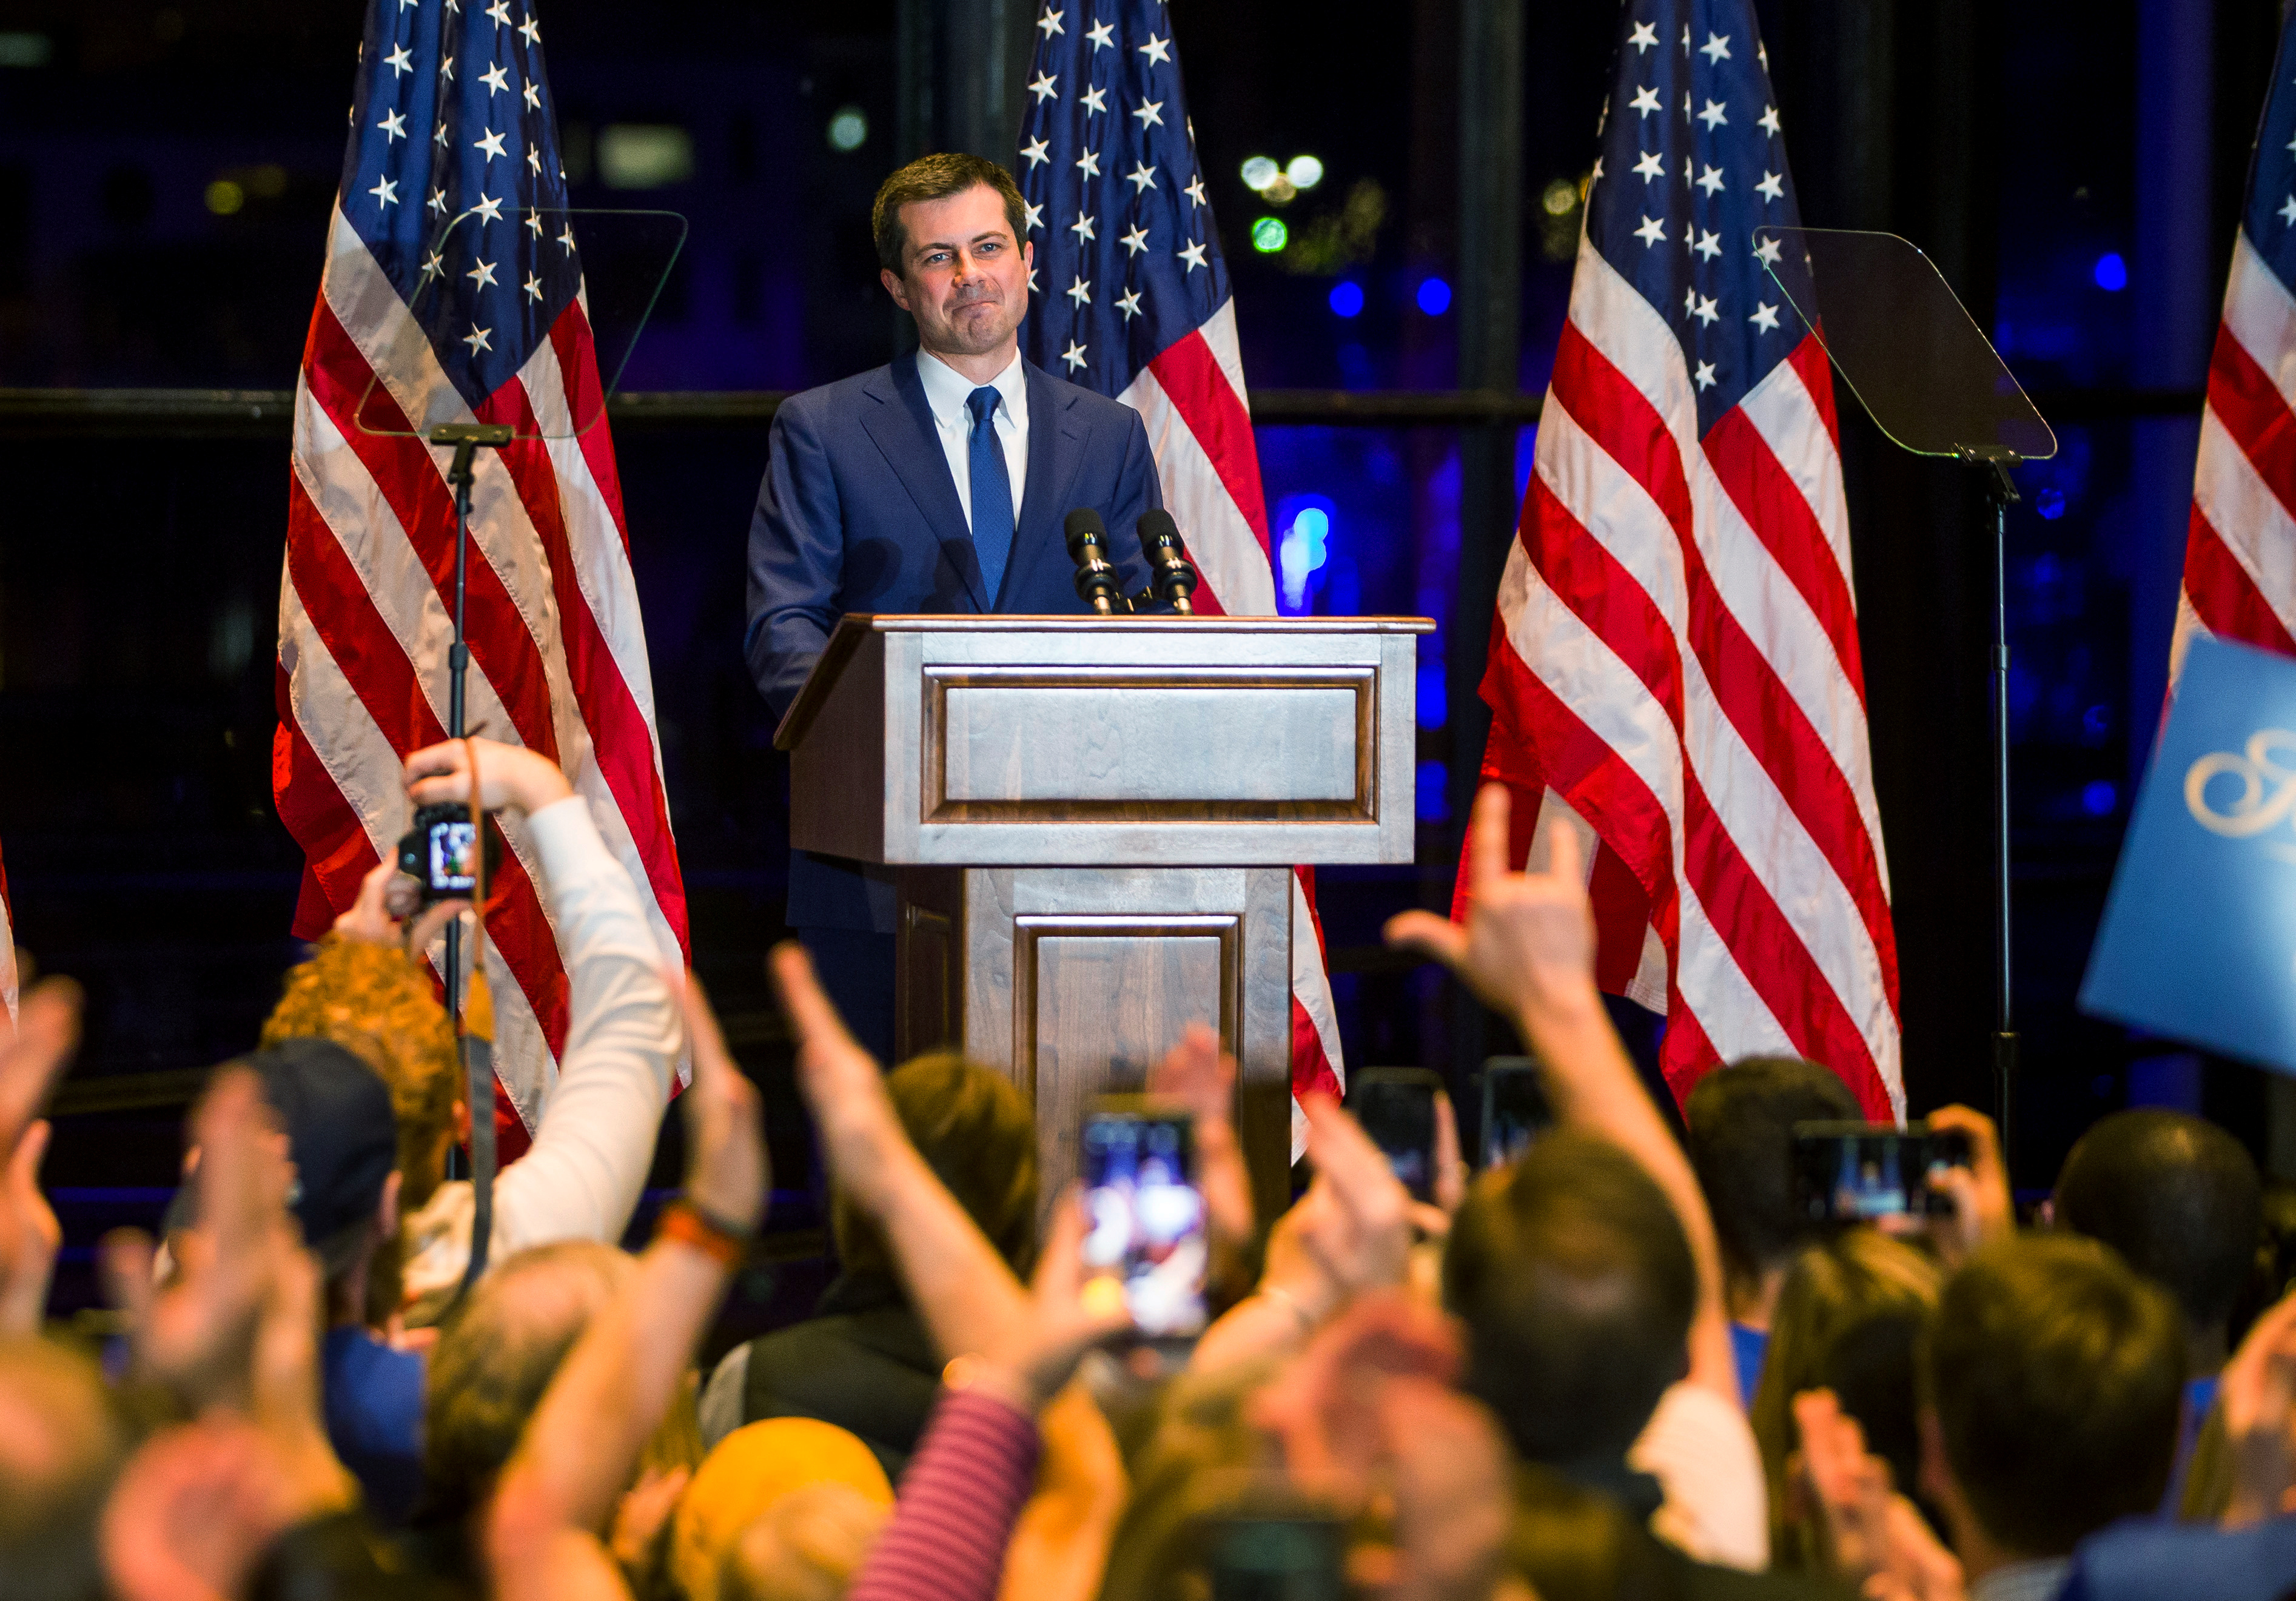 Democratic U.S. presidential candidate Pete Buttigieg announces his withdrawal from the race for the 2020 Democratic presidential nomination during an event in South Bend, Indiana, U.S., March 1, 2020. Mandatory Credit: Santiago Flores/South Bend Tribune via USA TODAY NETWORK via REUTERS